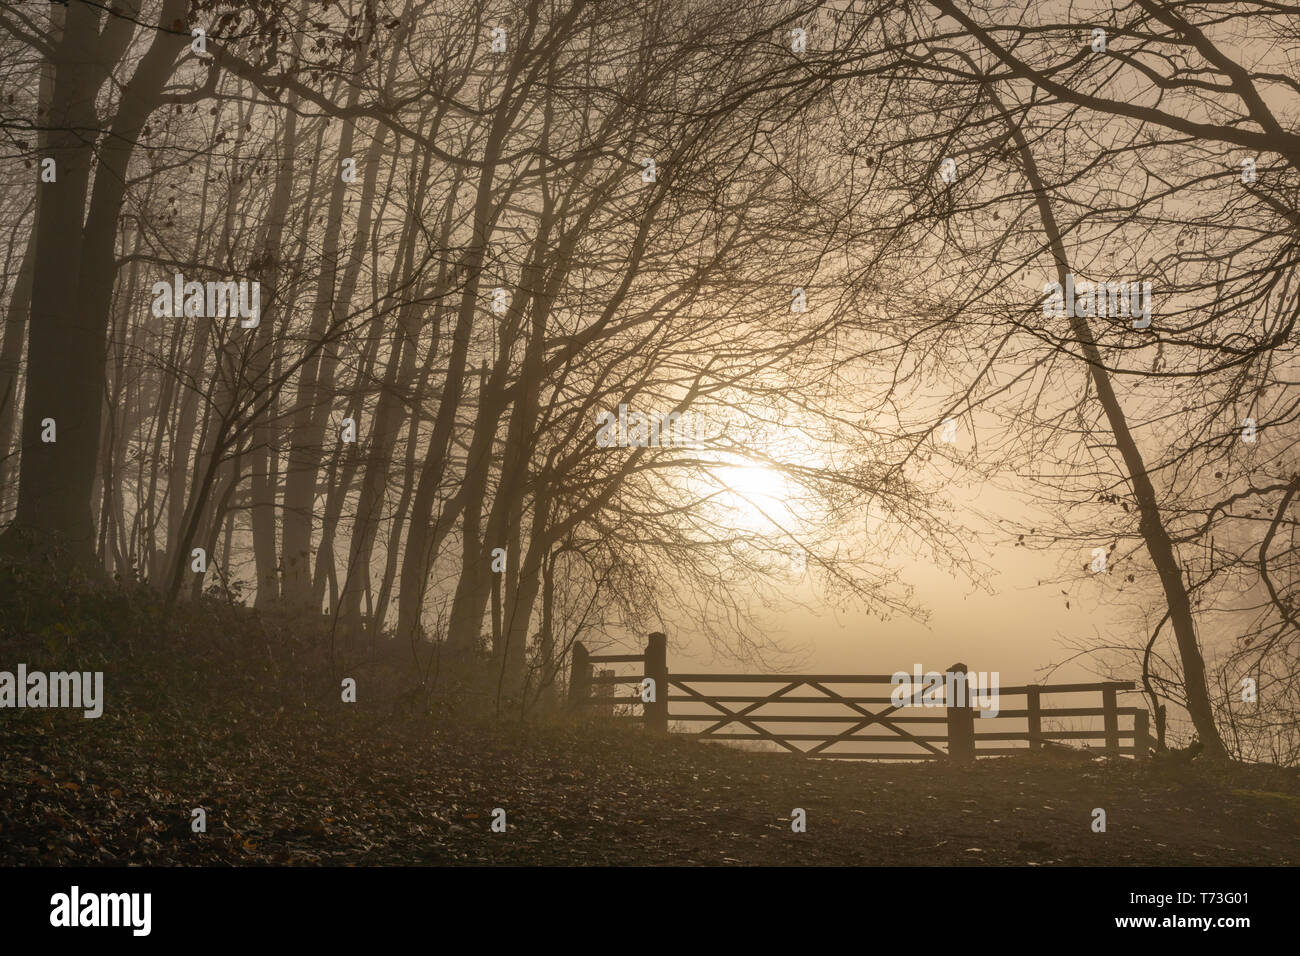 A milky sun rises through the mist under which a large five-bar gate blocks a path. Trees to either side of the path lean over it. Sepia tones. - Stock Image